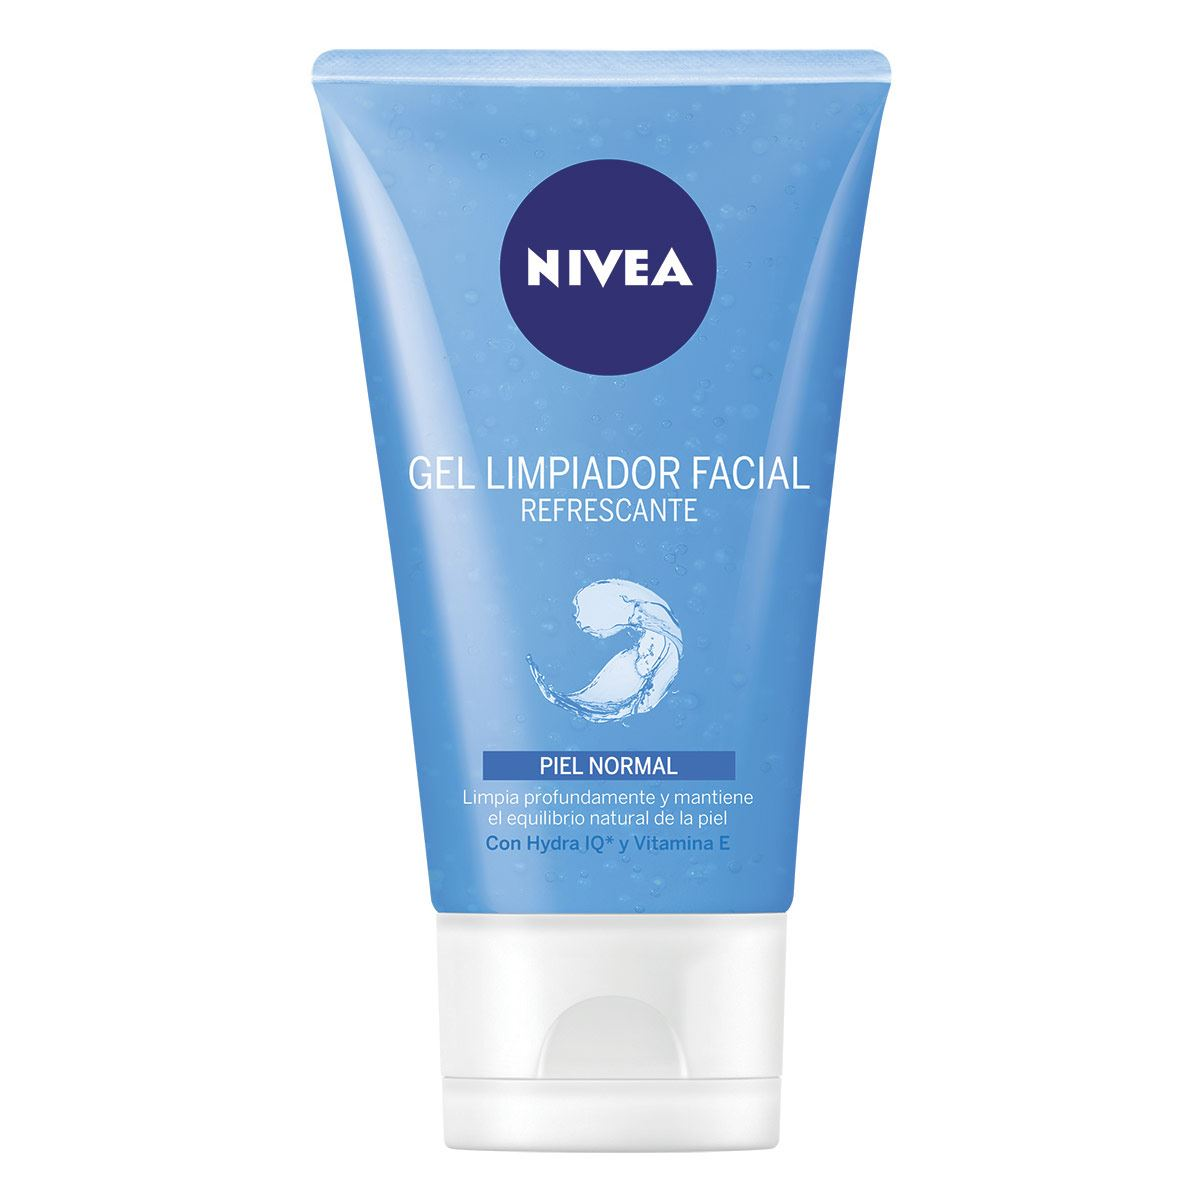 Gel limpiador refrescante nivea 150 ml  - Sanborns